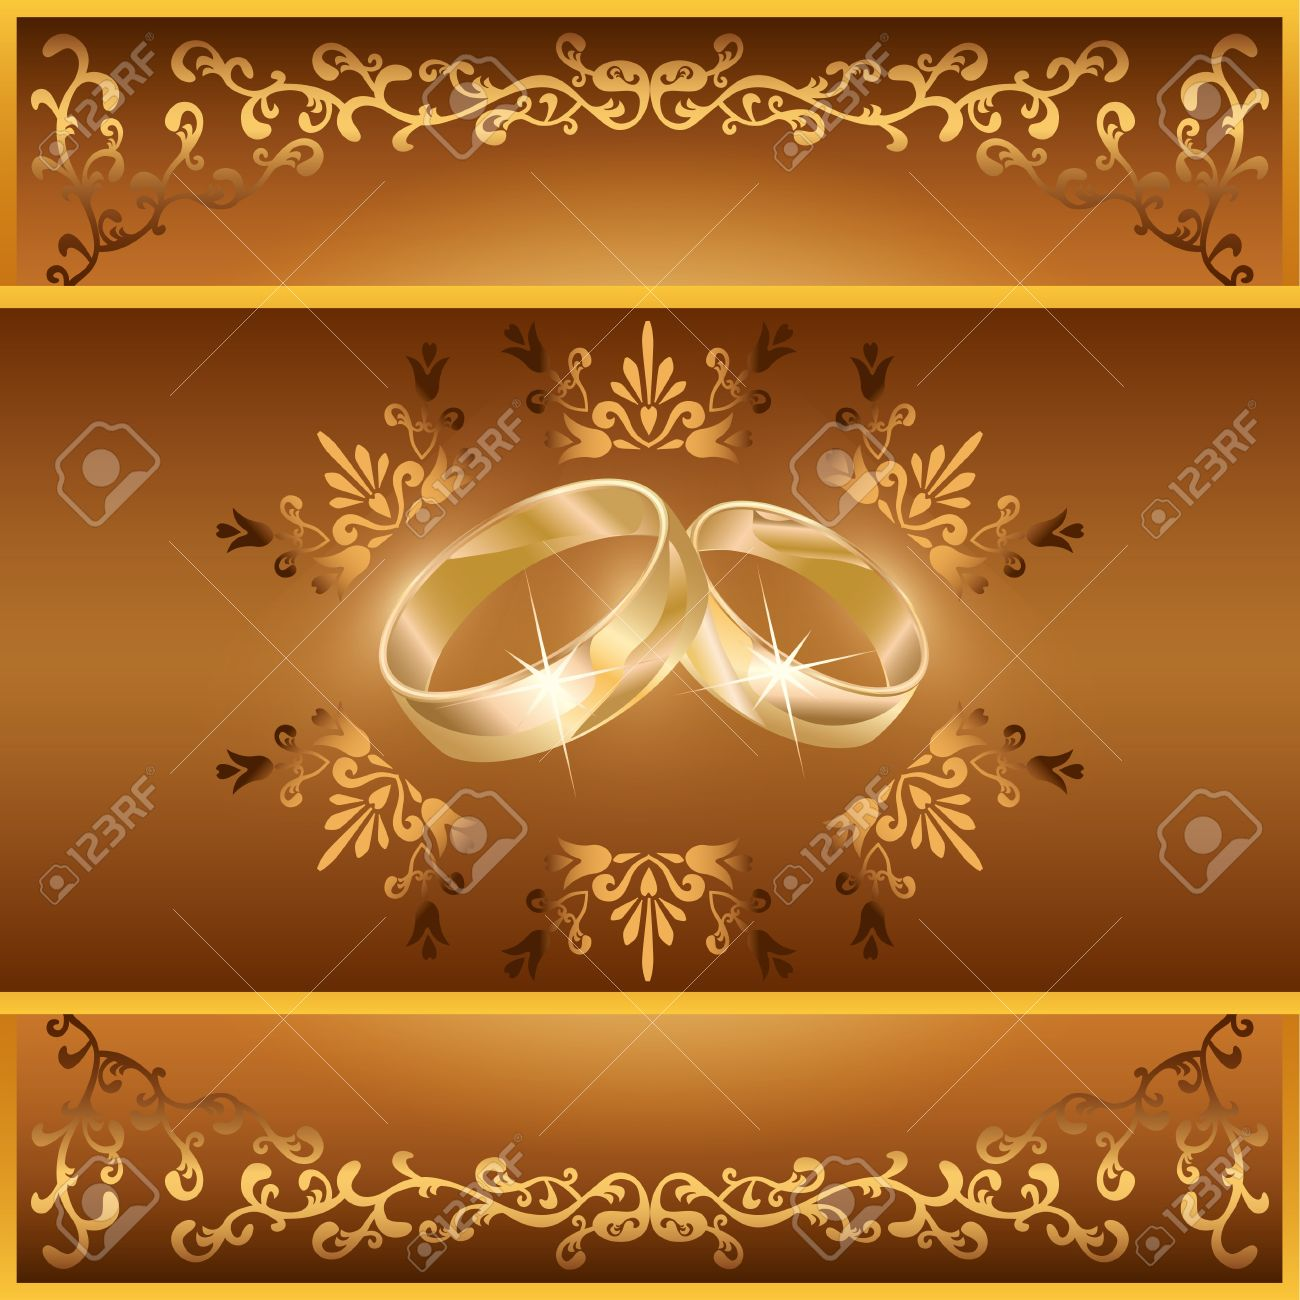 Wedding Invitation Or Greeting Card With Two Wedding Rings And